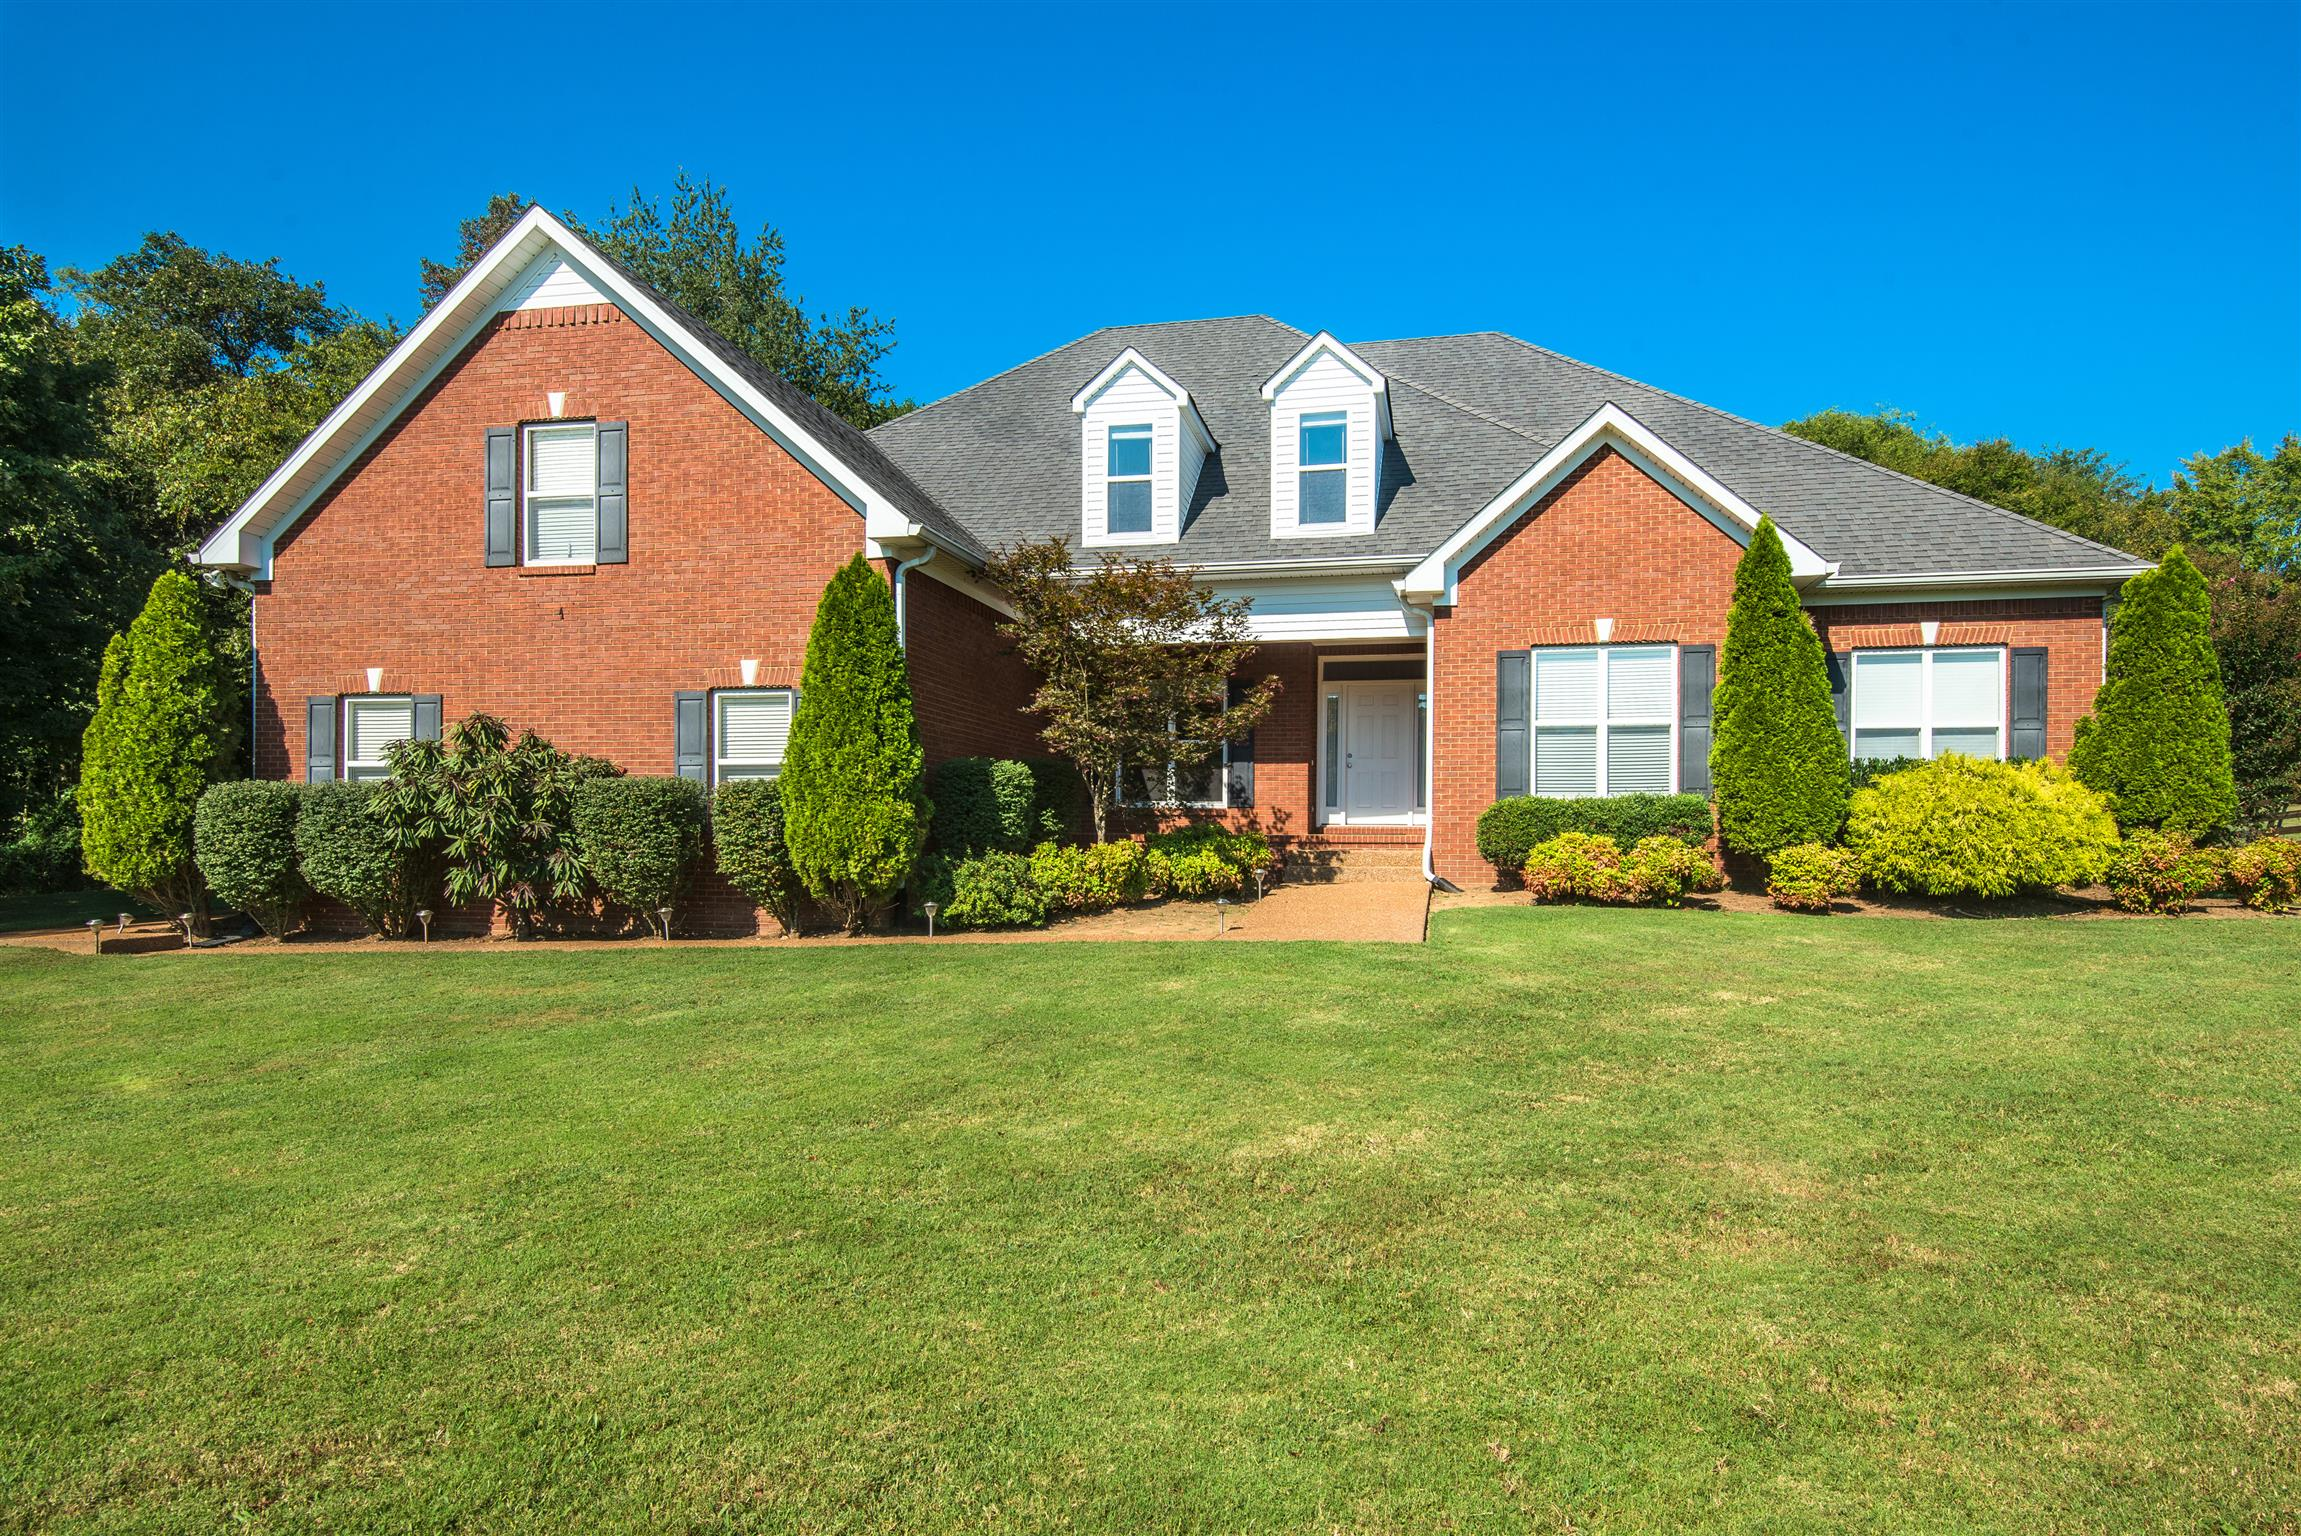 3130 Earnhardt Dr, Spring Hill, TN 37174 - Spring Hill, TN real estate listing